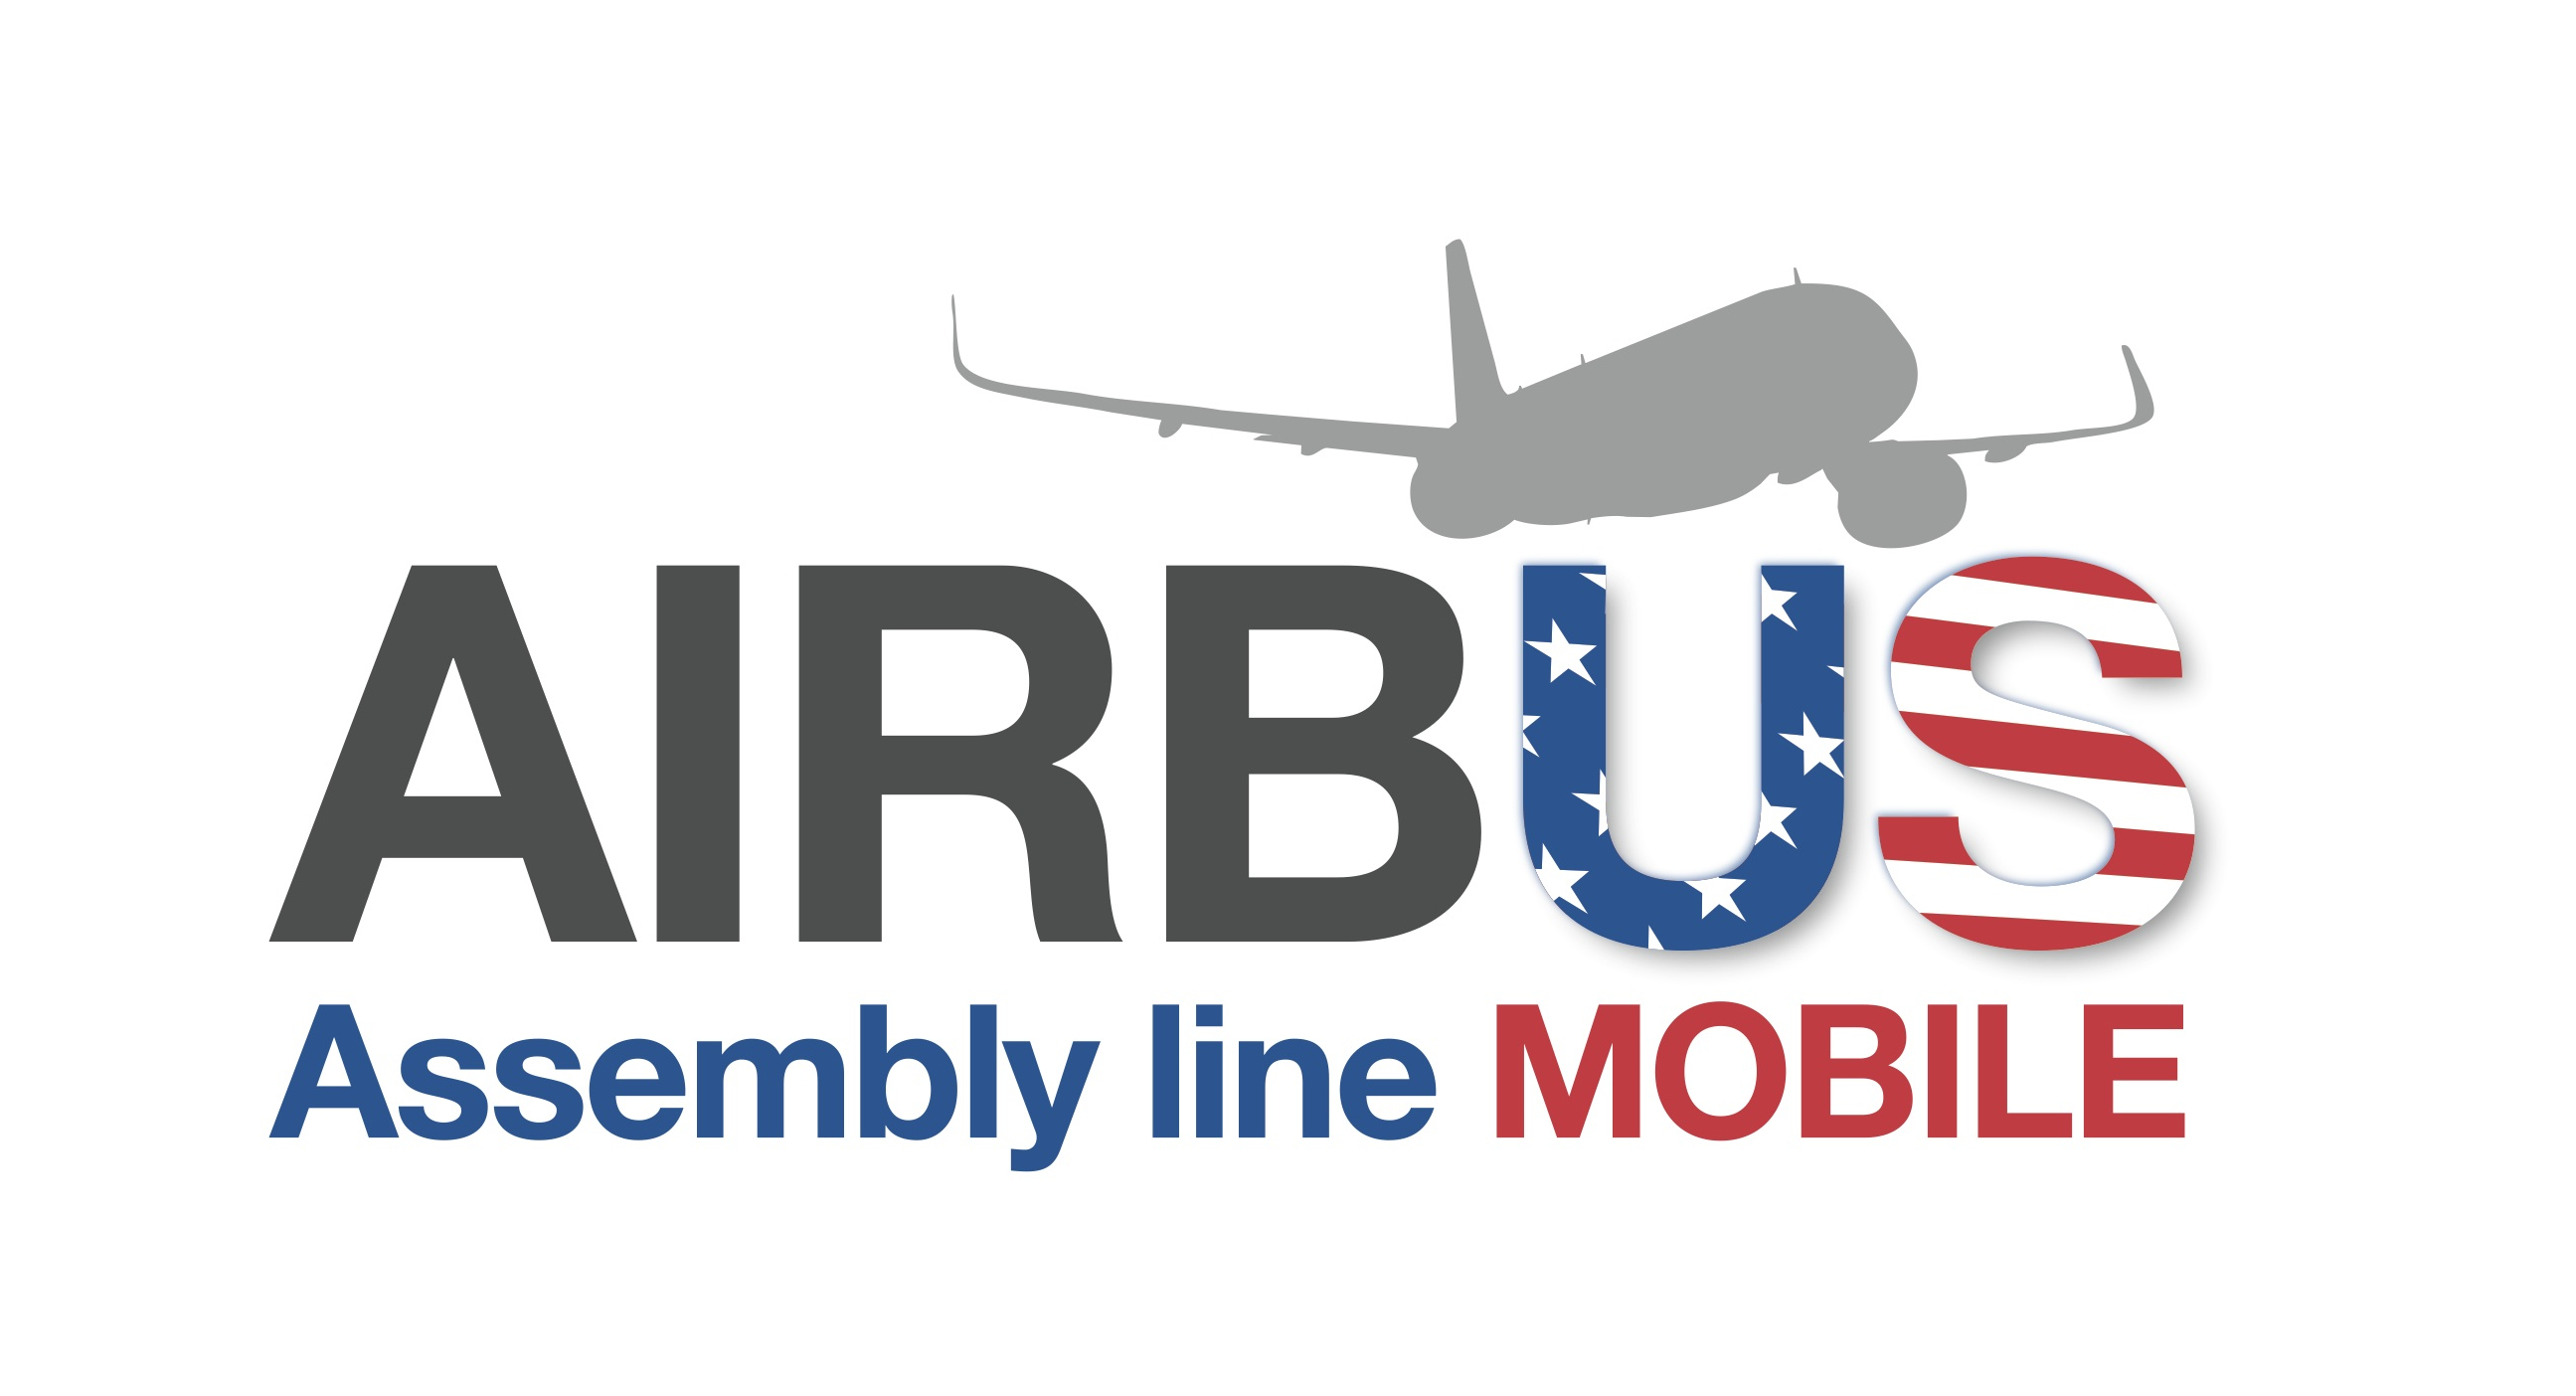 Airbus Mobile FAL a victory for CEO Enders - Leeham News and Analysis